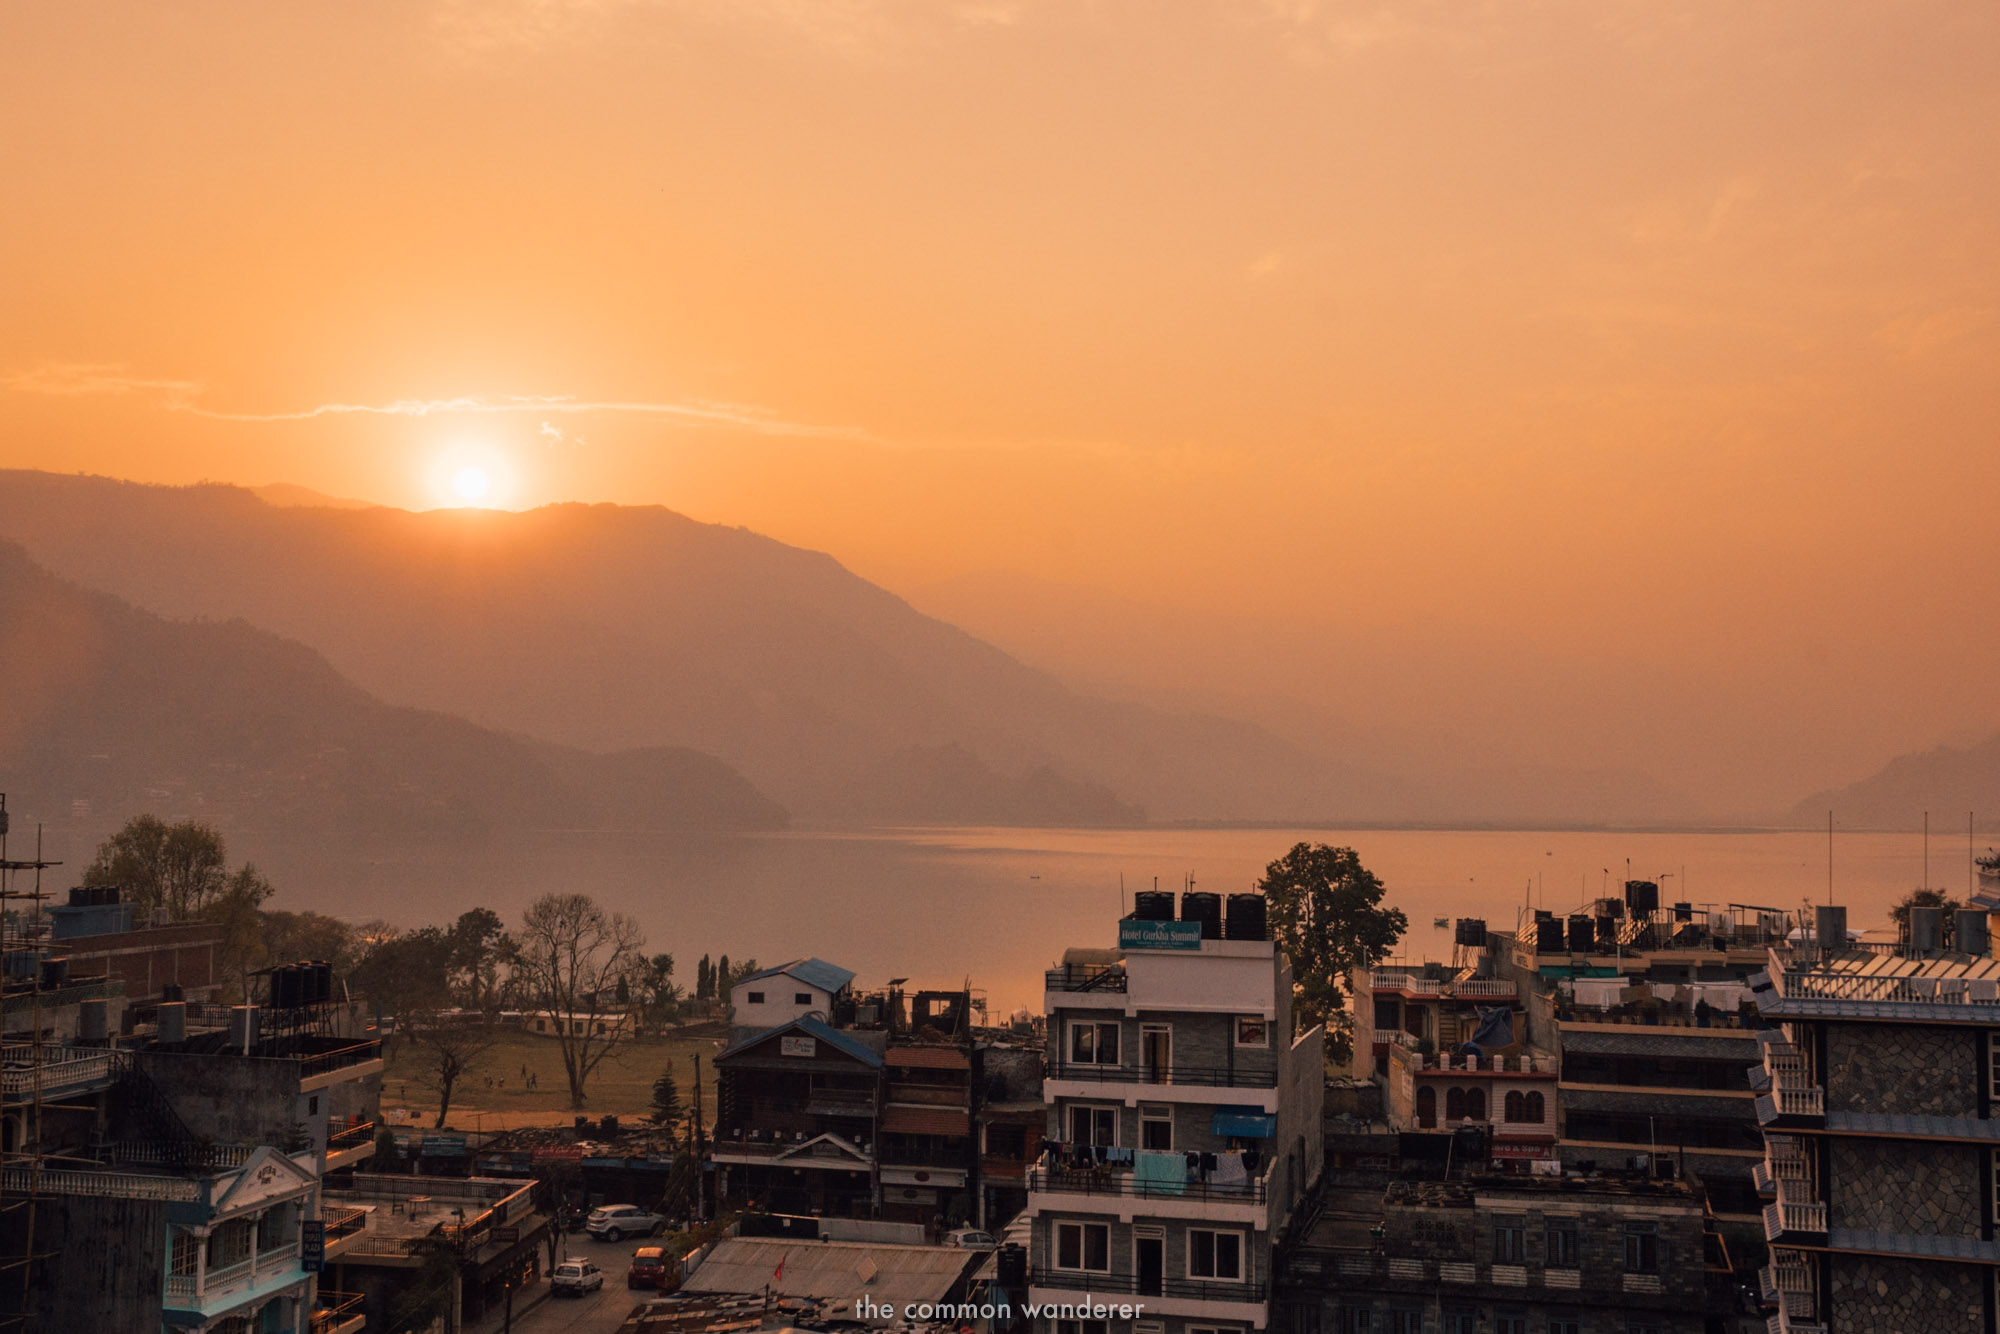 Sunset in Pokhara, Nepal